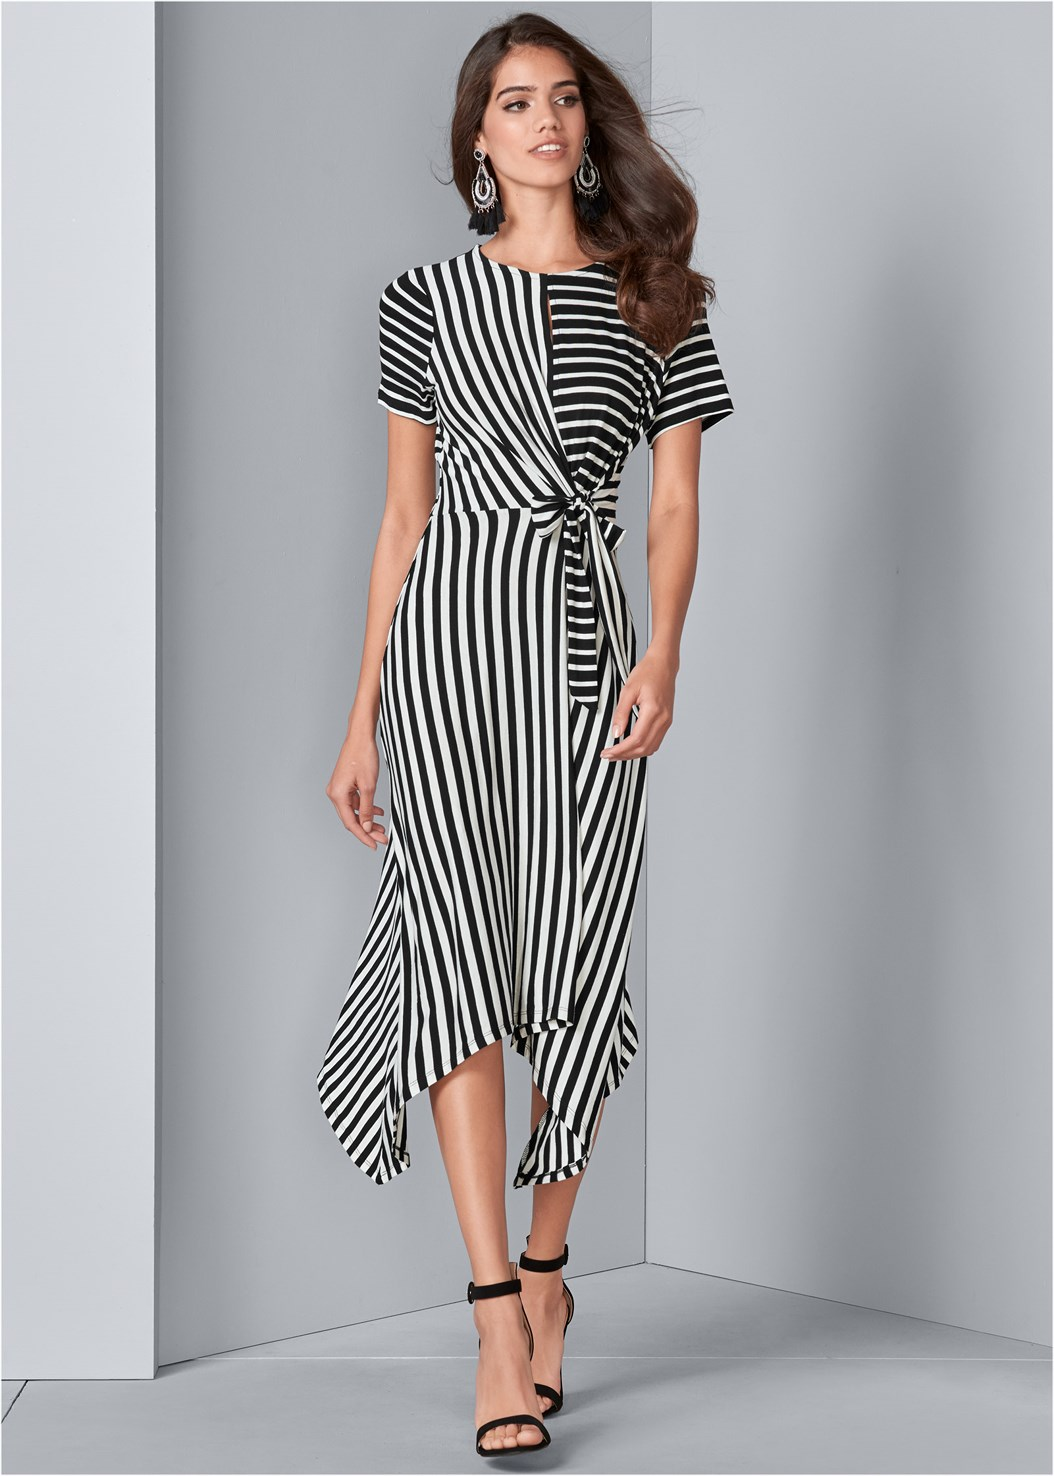 Striped Faux Wrap Dress,Naked T-Shirt Bra,Embellished Lucite Heel